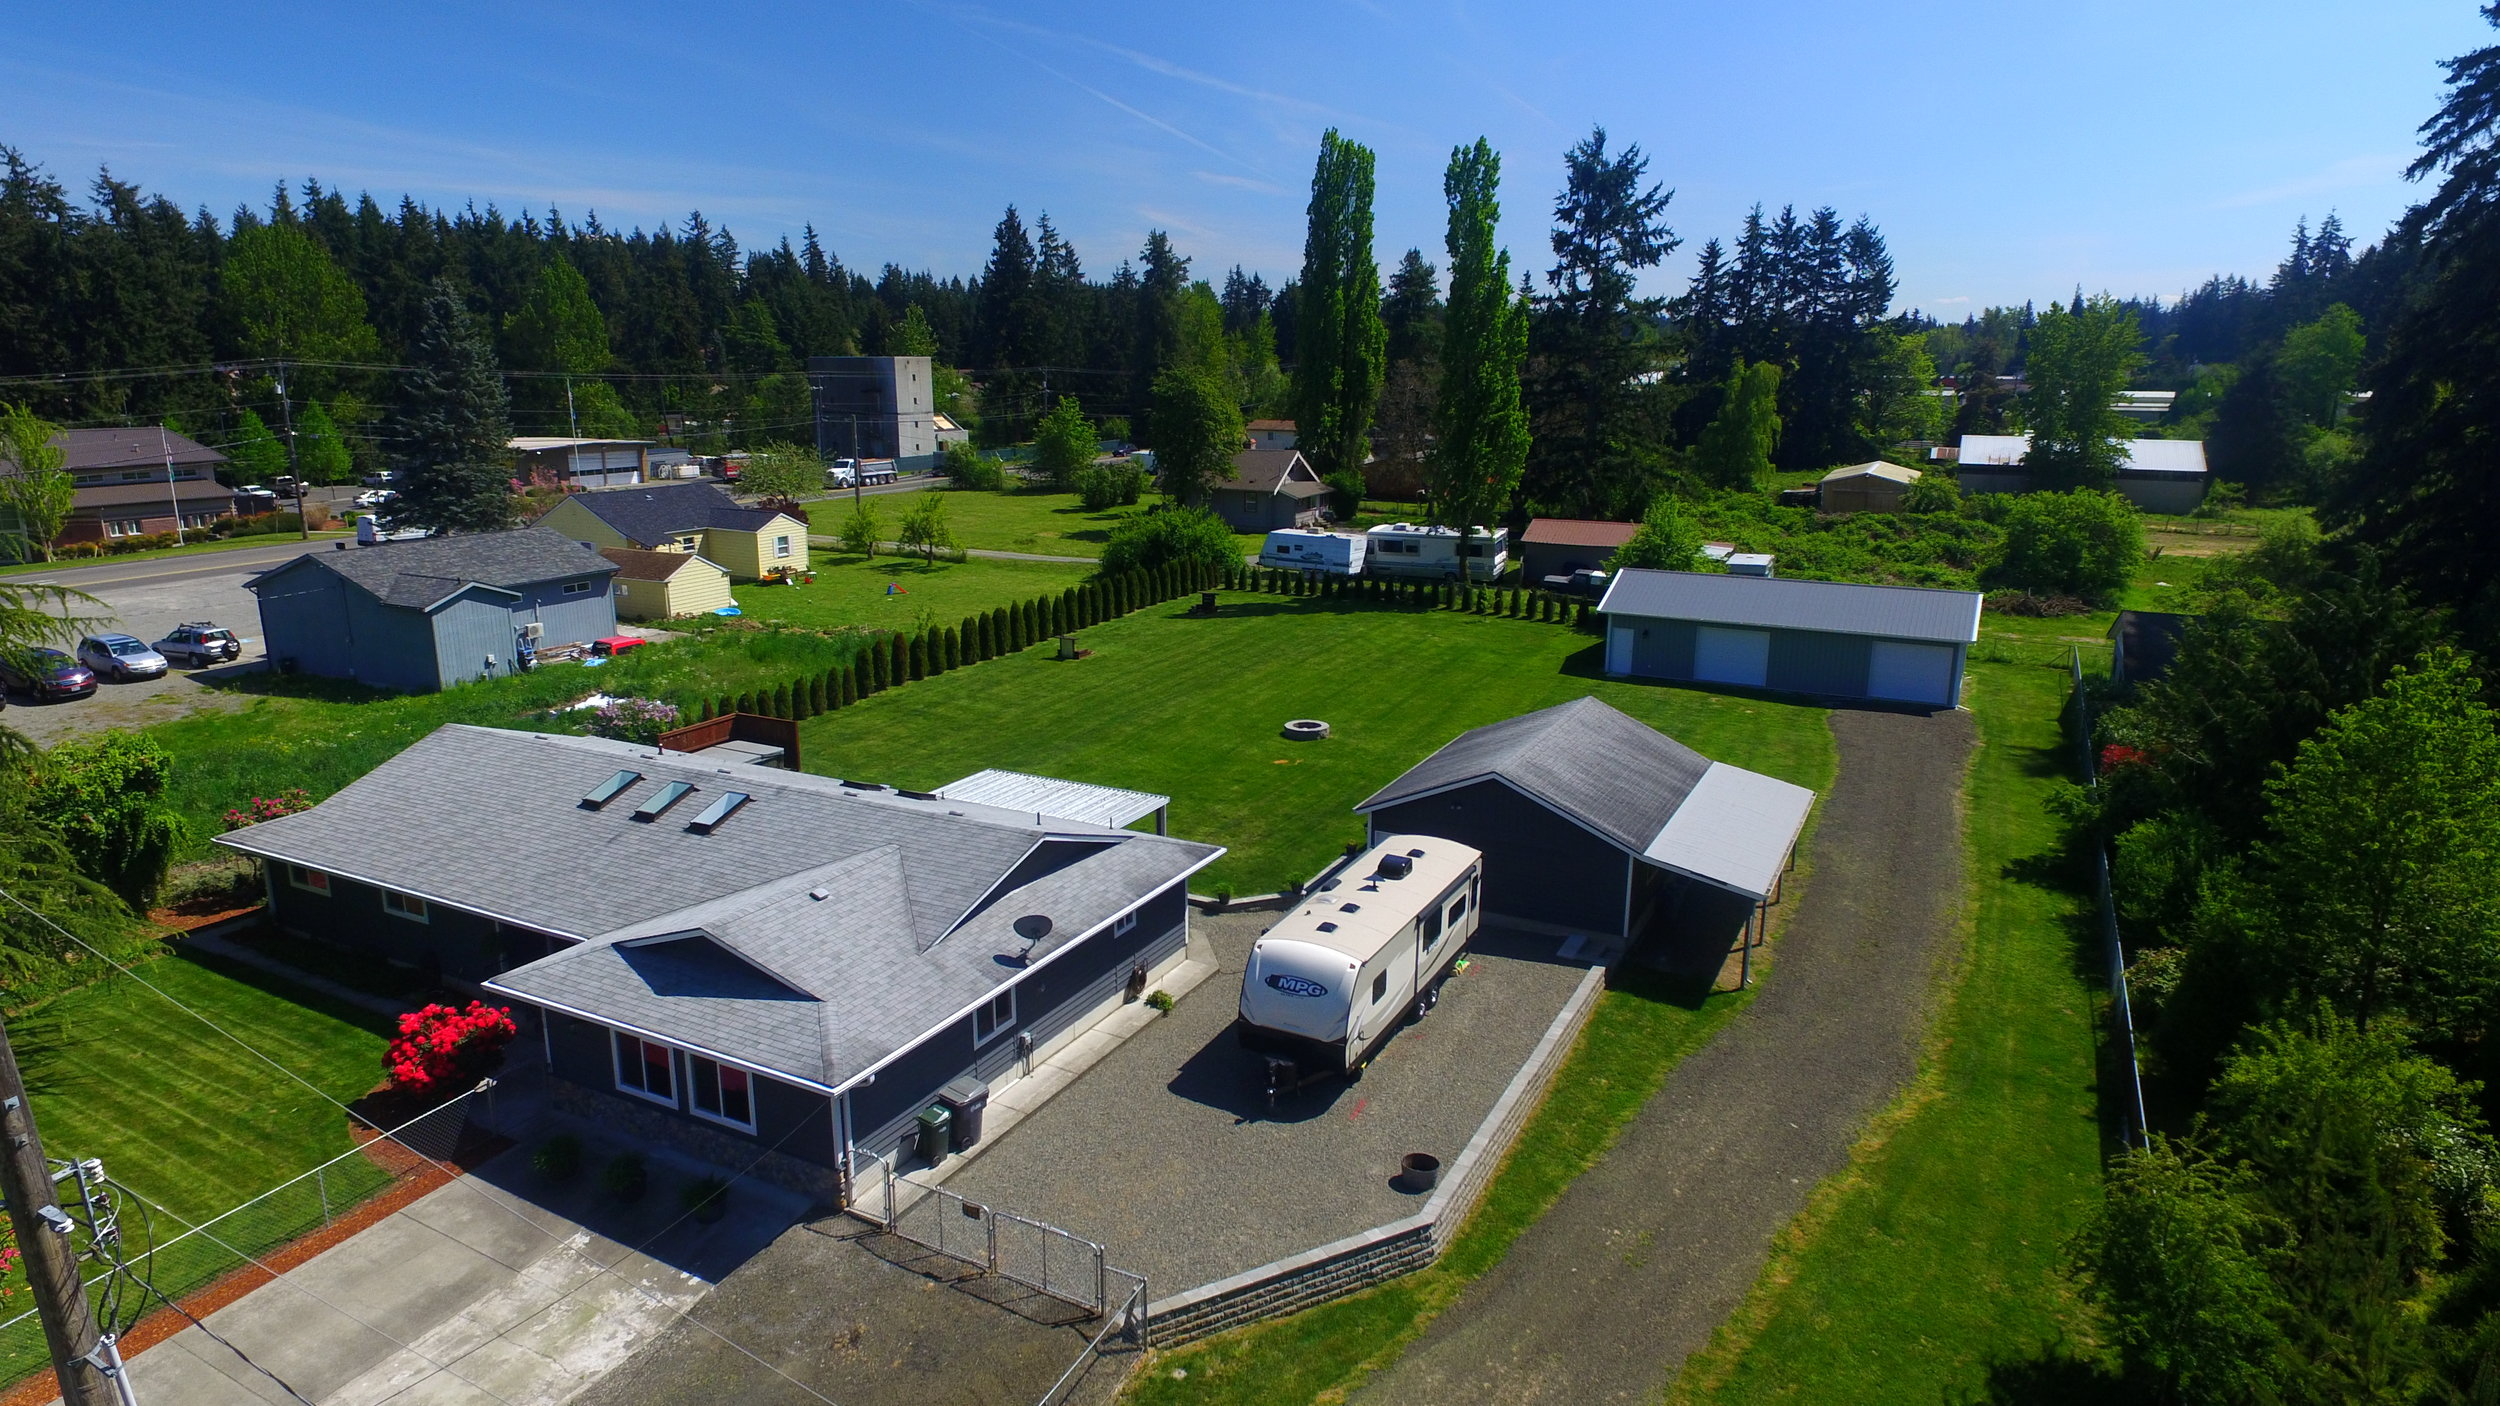 Detached garage, newly built shop, RV parking & hookup, on 0.79 acres. So much room with easy access to Tacoma and Puyallup!